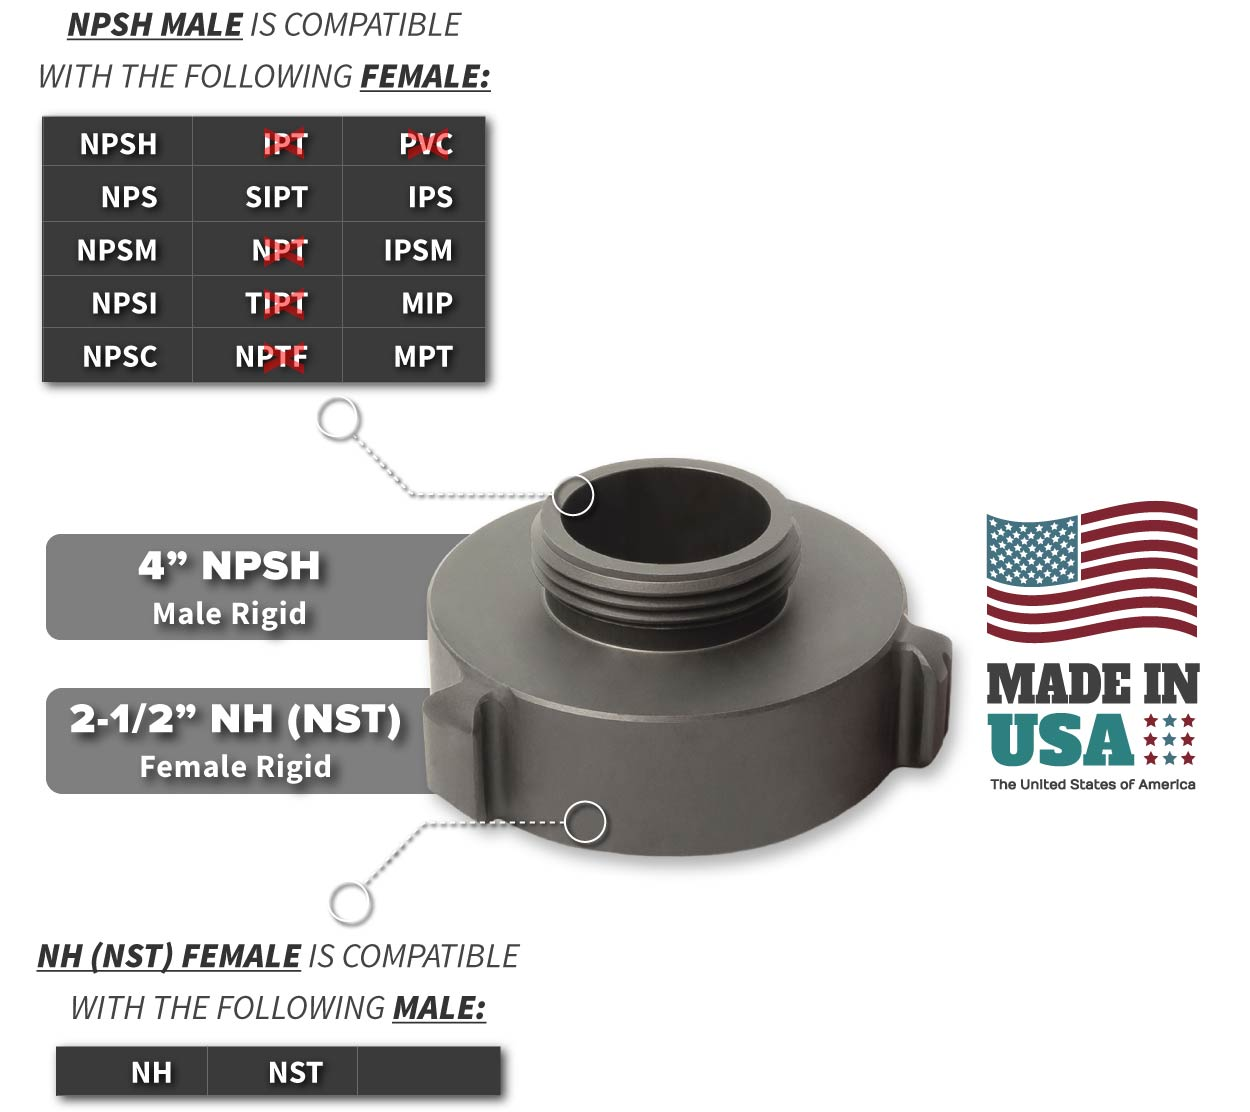 2.5 Inch NH-NST Female x 4 Inch NPSH Male Compatibility Thread Chart